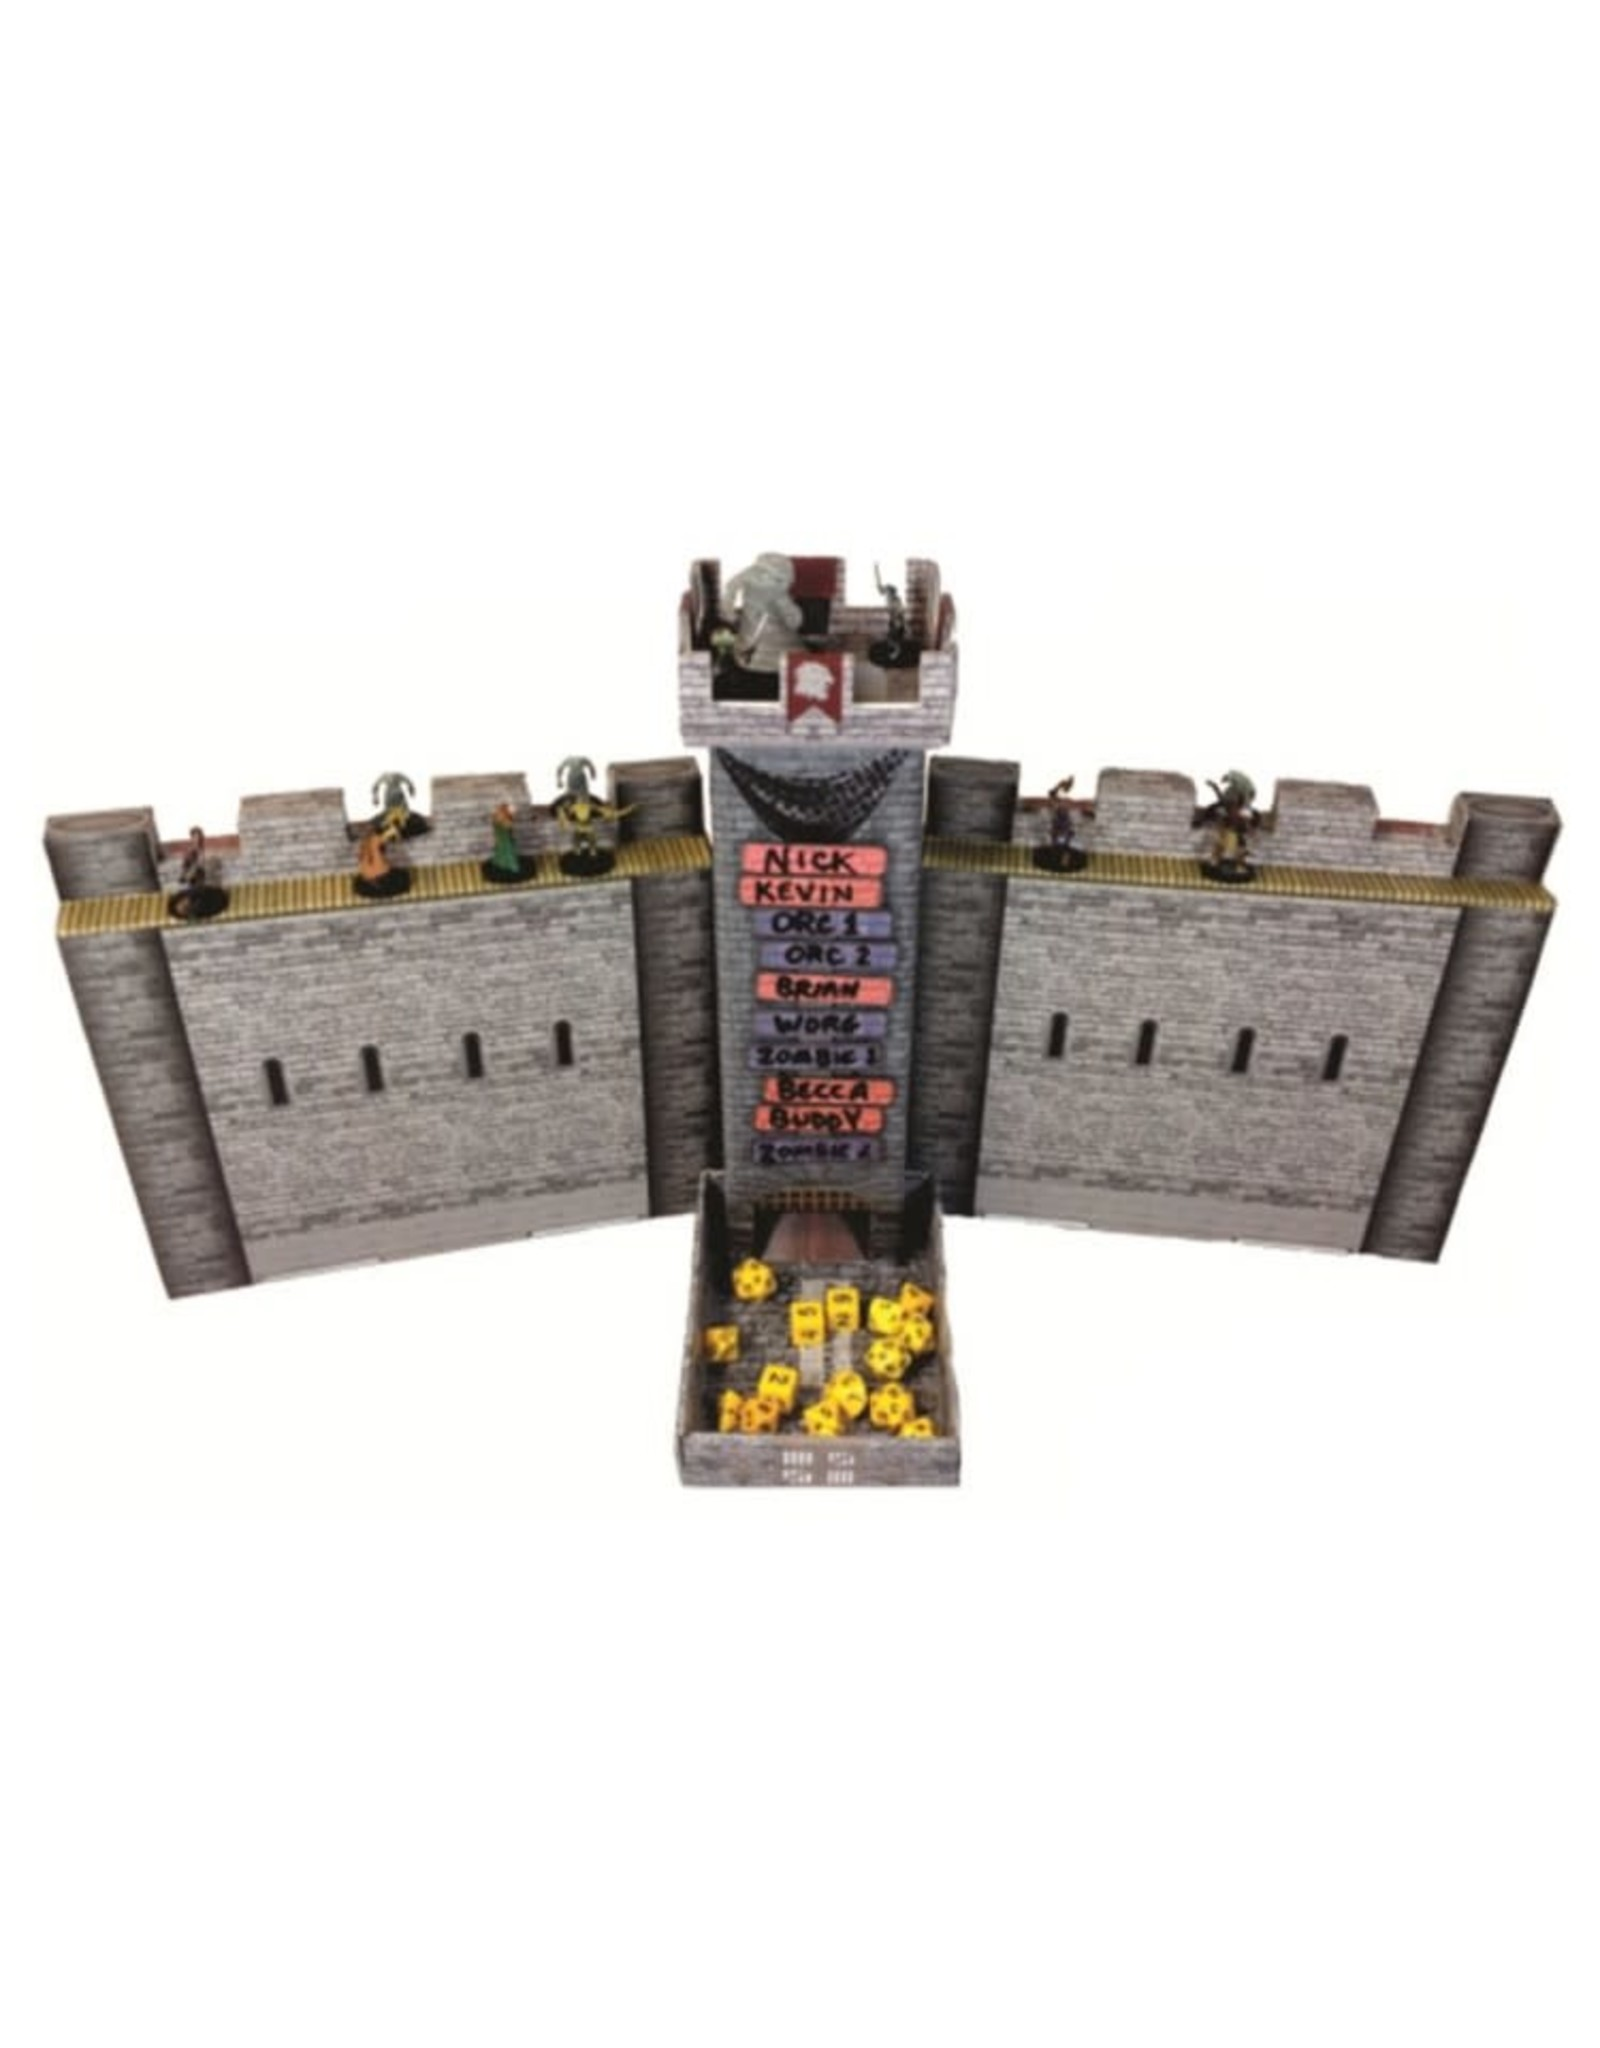 Role 4 Initiative Castle Keep Dice Tower and Dungeon Master Screen